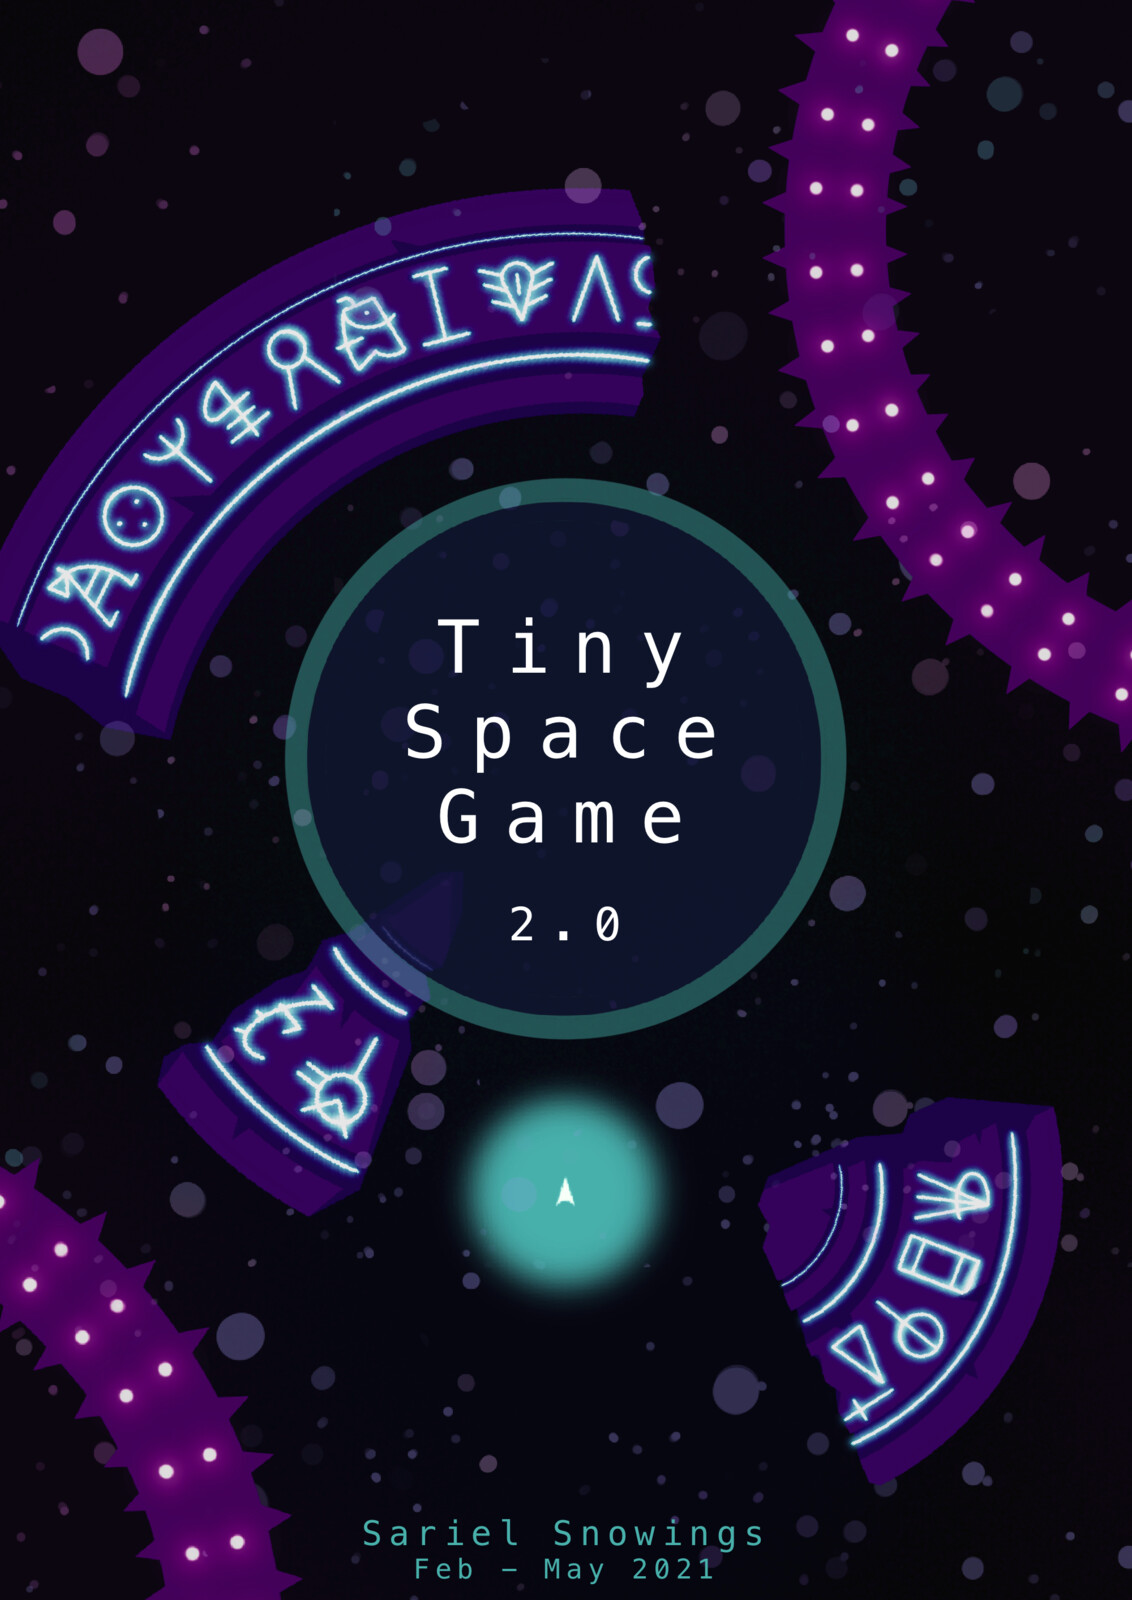 Tiny Space Game v.2 - video game art